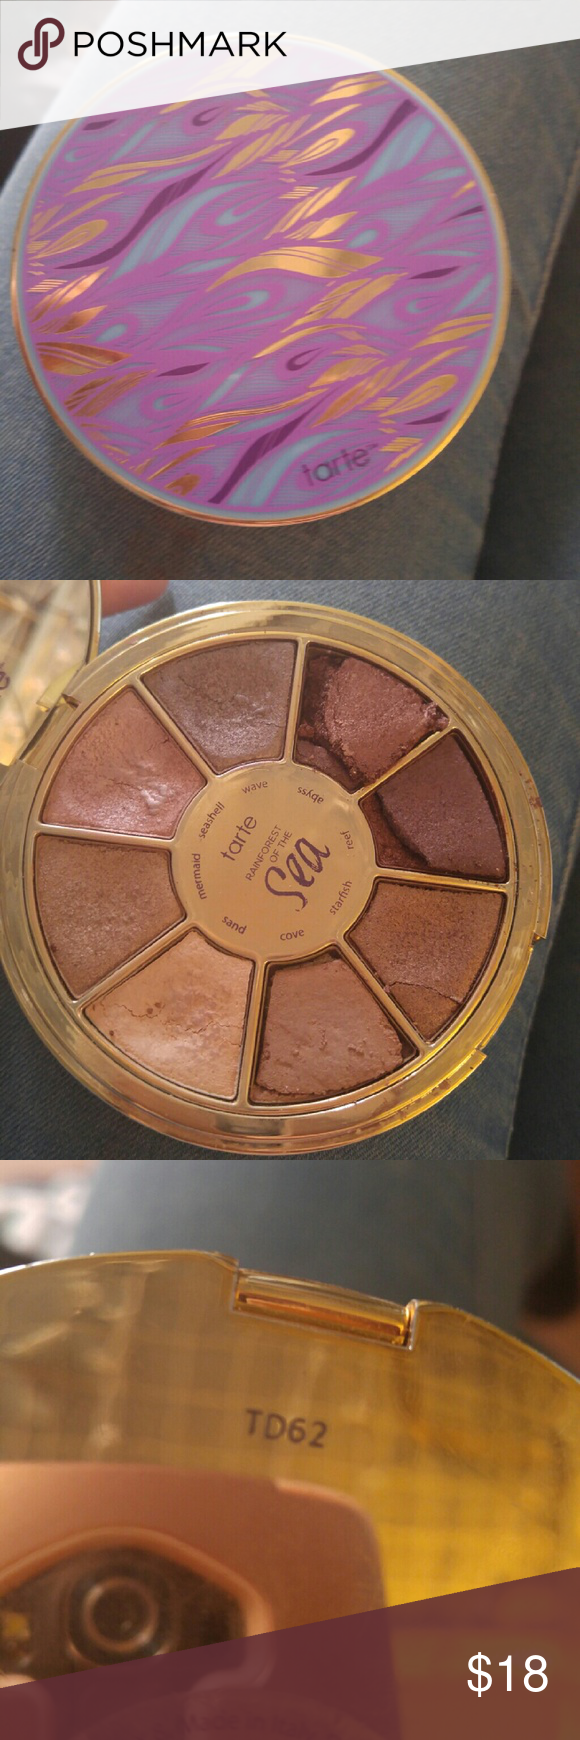 tarte Rainforest of the Sea Palette It dropped and some of the eyeshadow popped out but all the pieces are there and can easily be pressed in. Condition reflected in price and product will be carefully shipped tarte Makeup